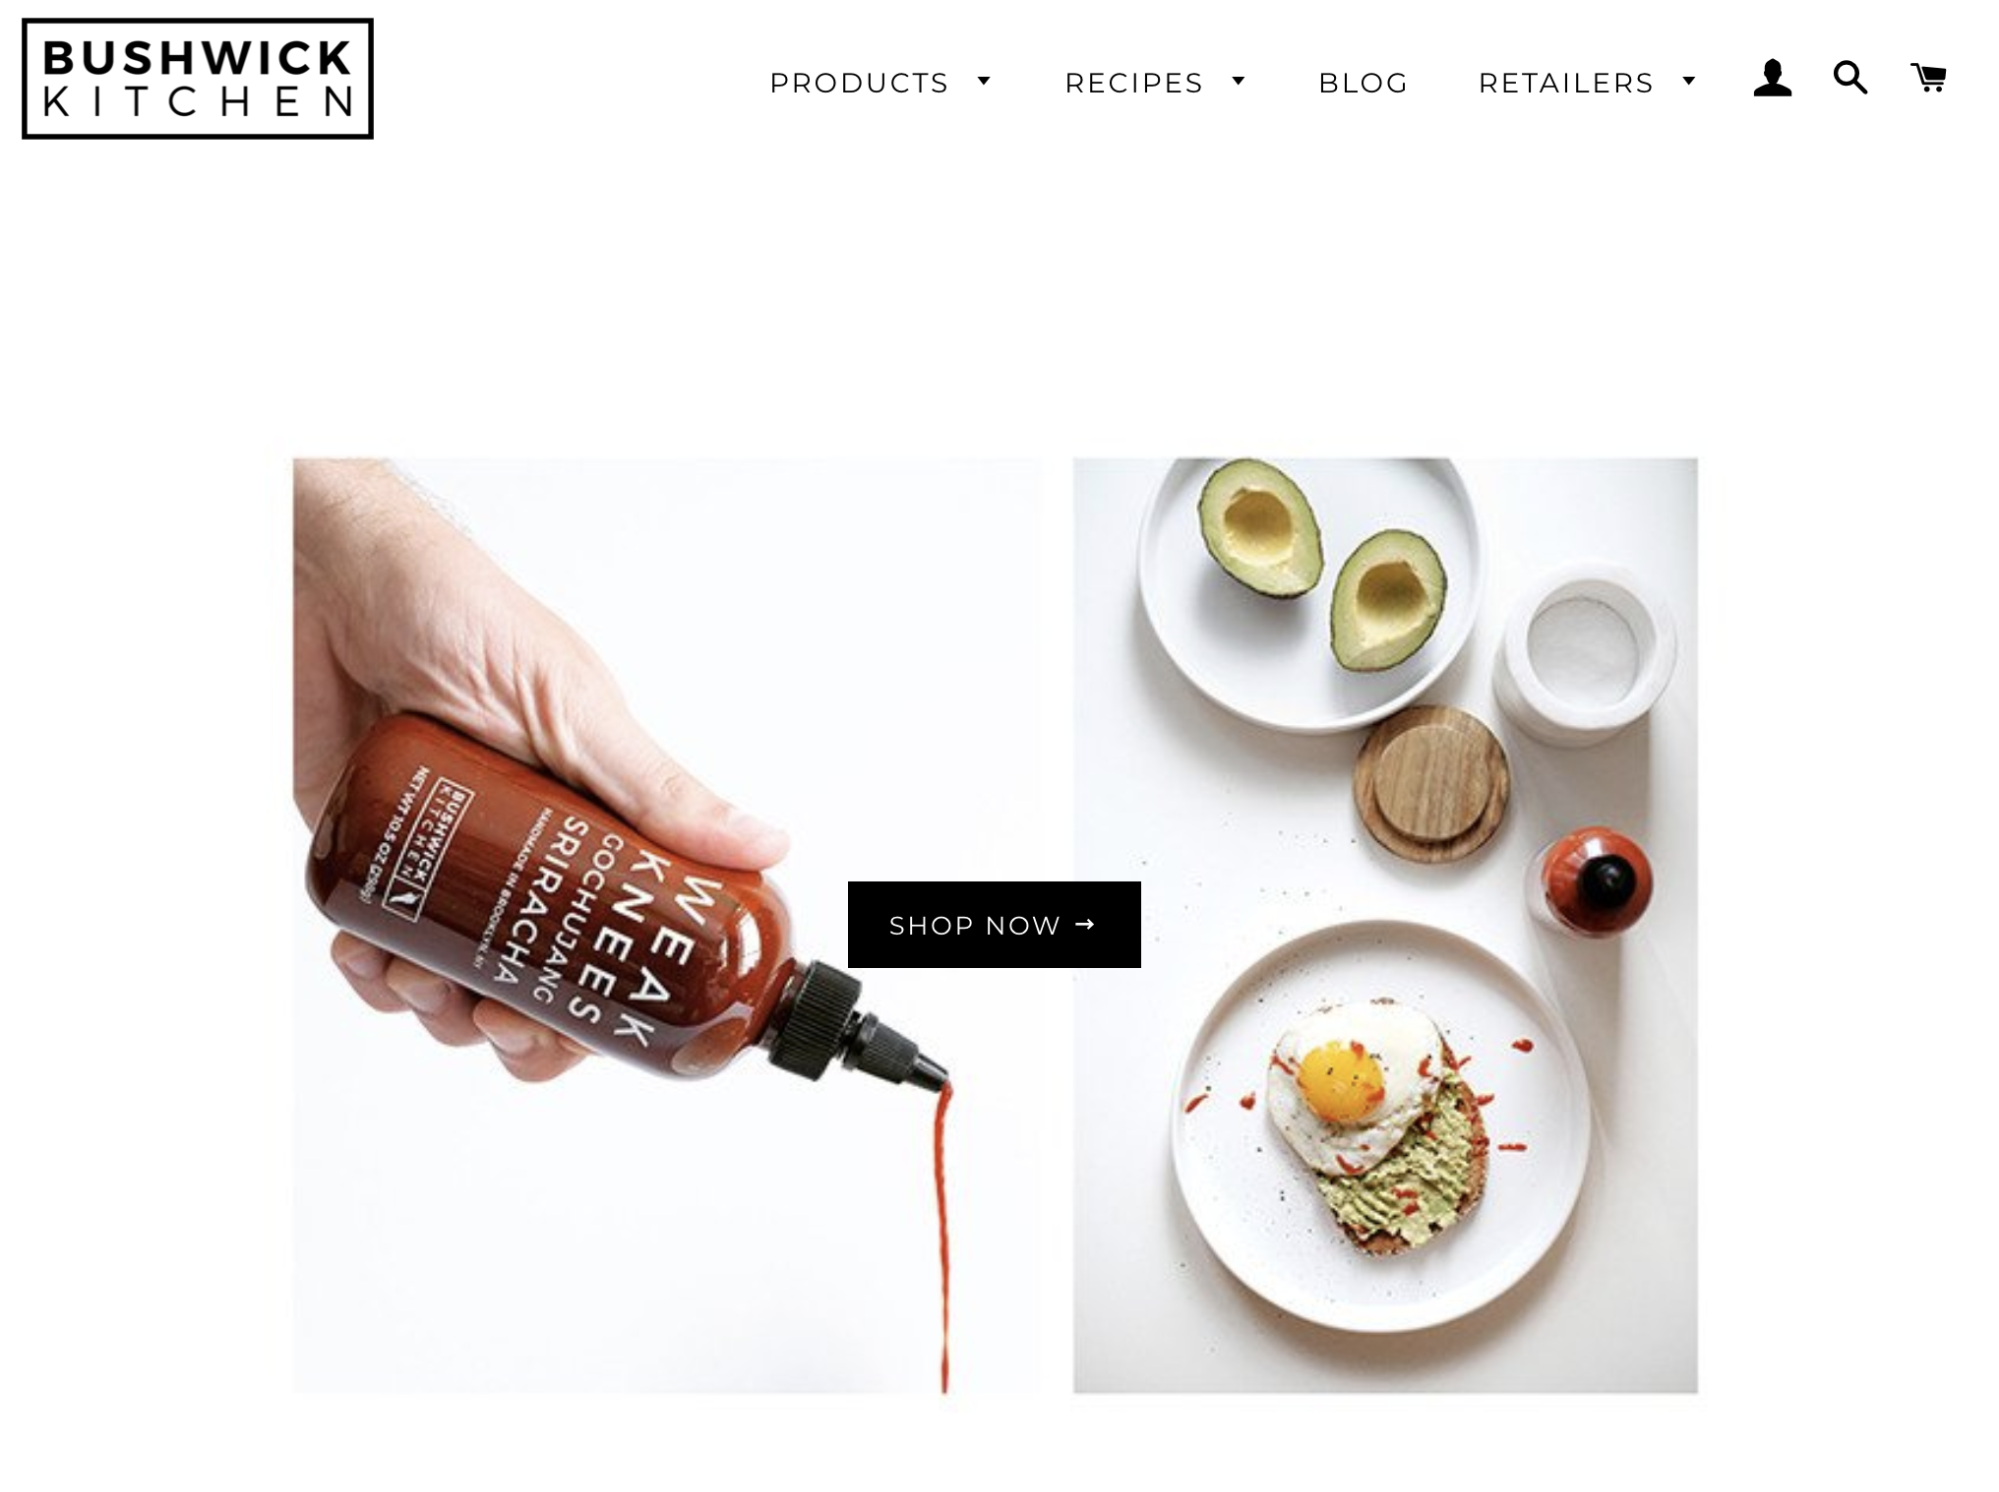 Screenshot showing landing page on bushwick kitchen